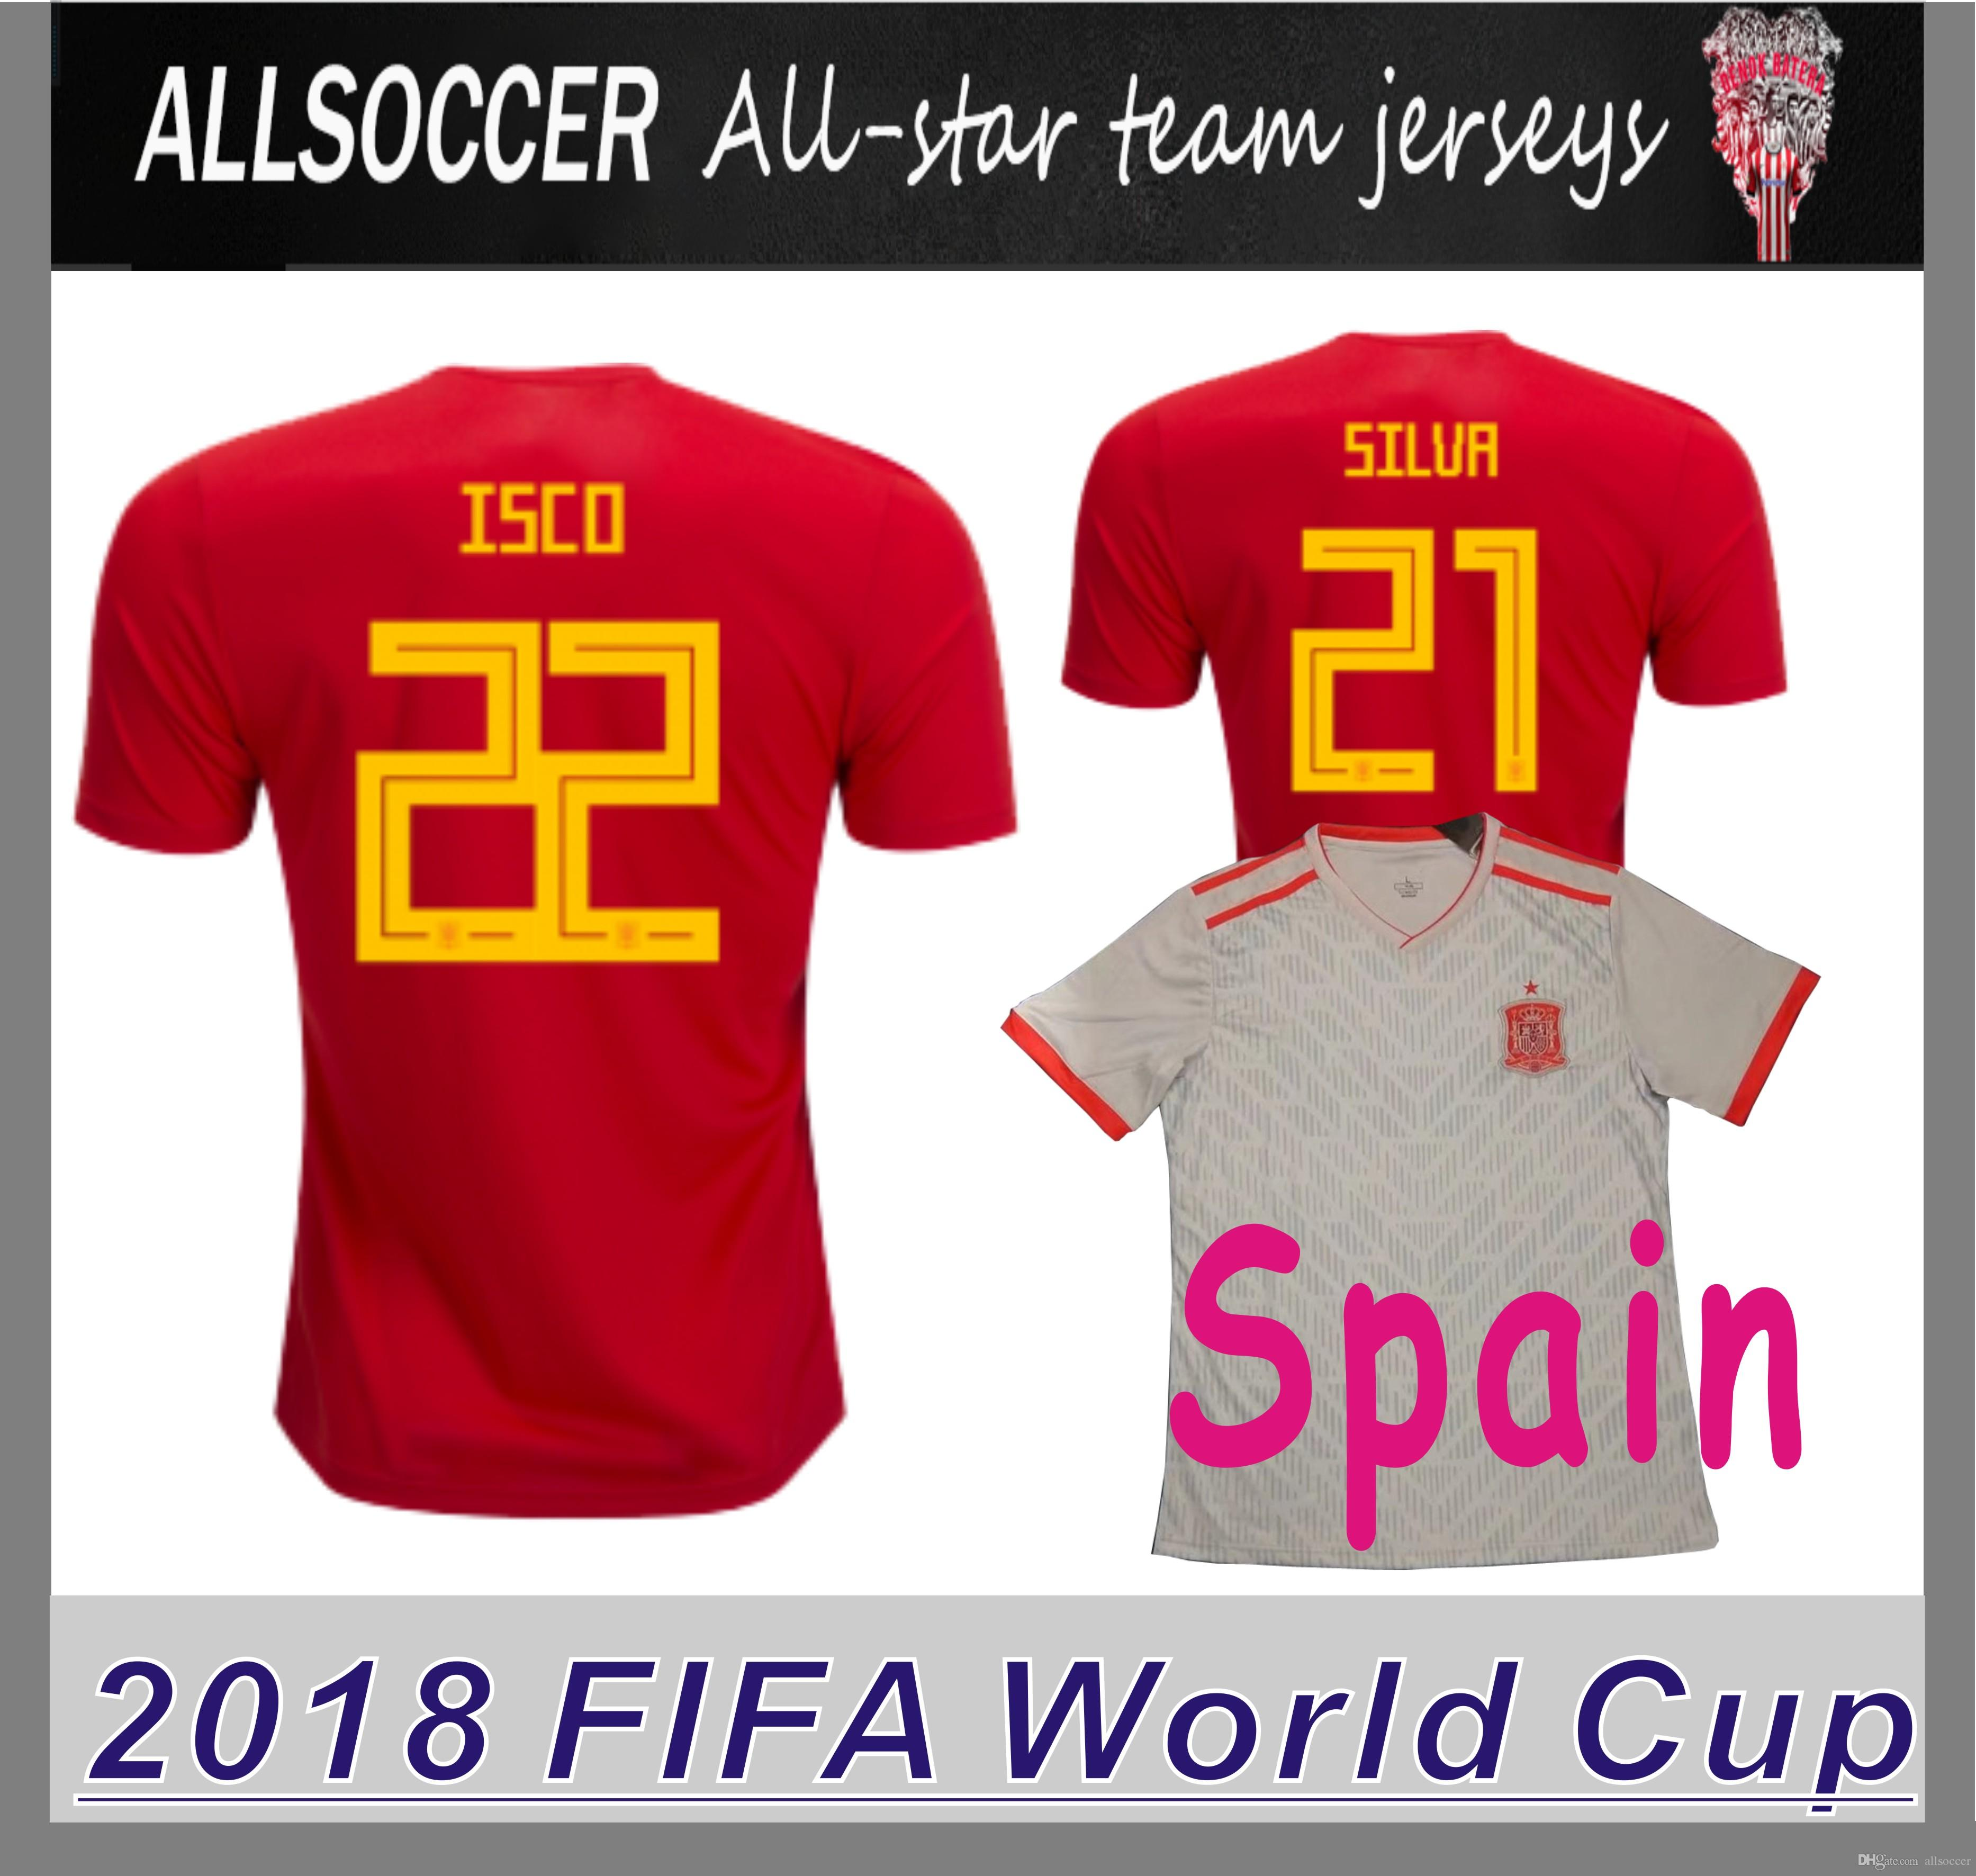 47899eaff 2018 World Cup JERSEYS Spain Home And Away Soccer Tshirts Marco ...